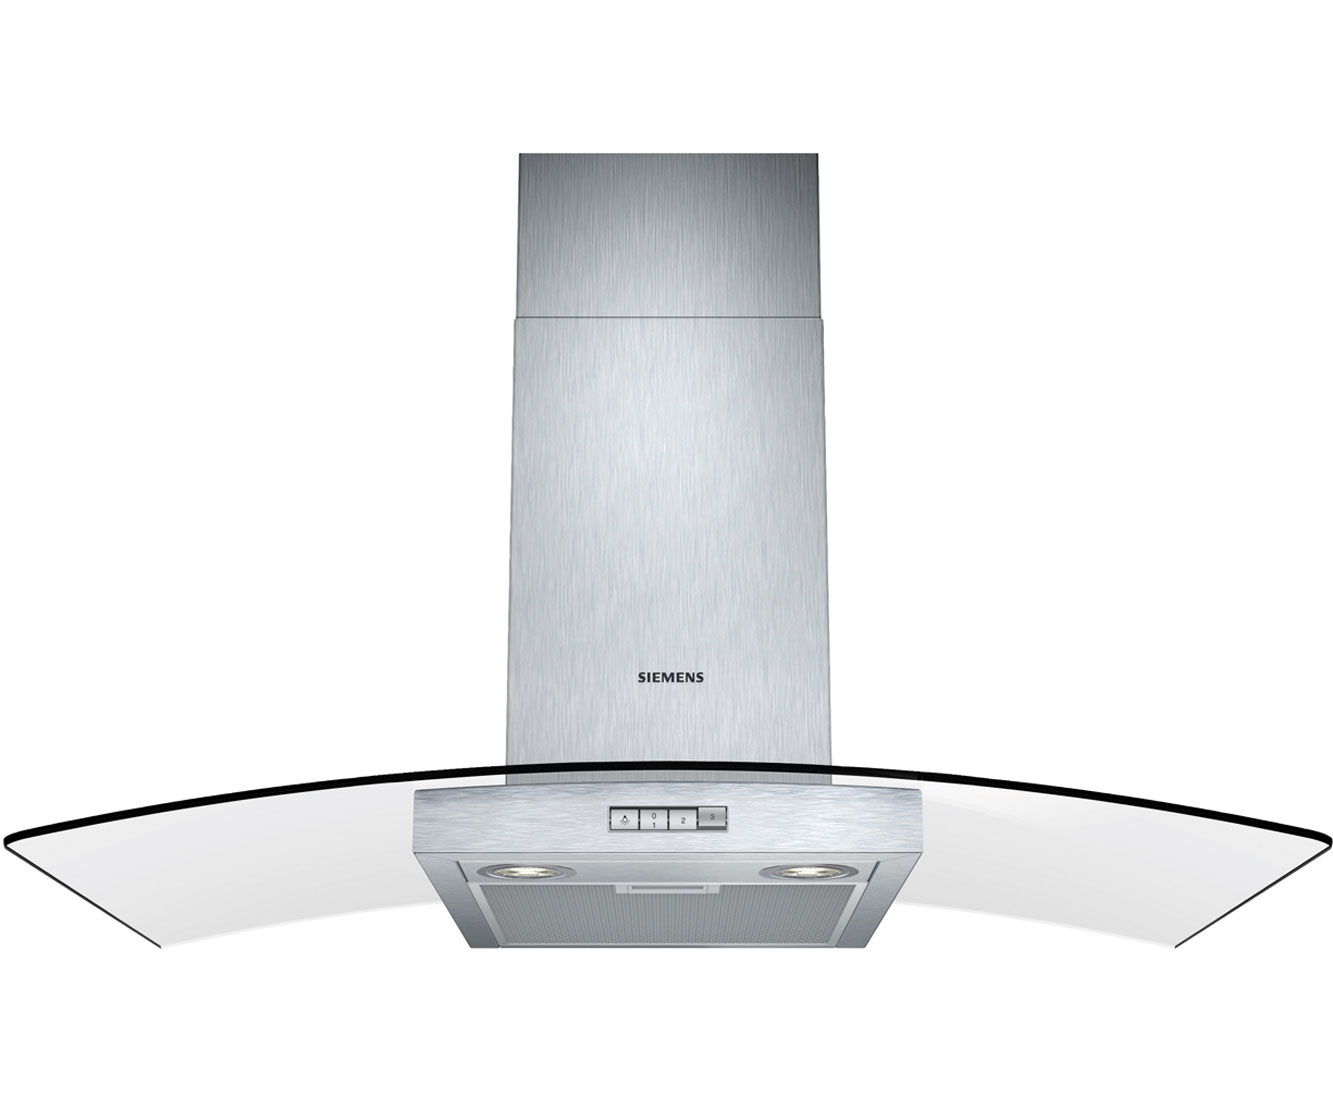 Siemens LC94GB522B Integrated Cooker Hood in Stainless Steel  Glass